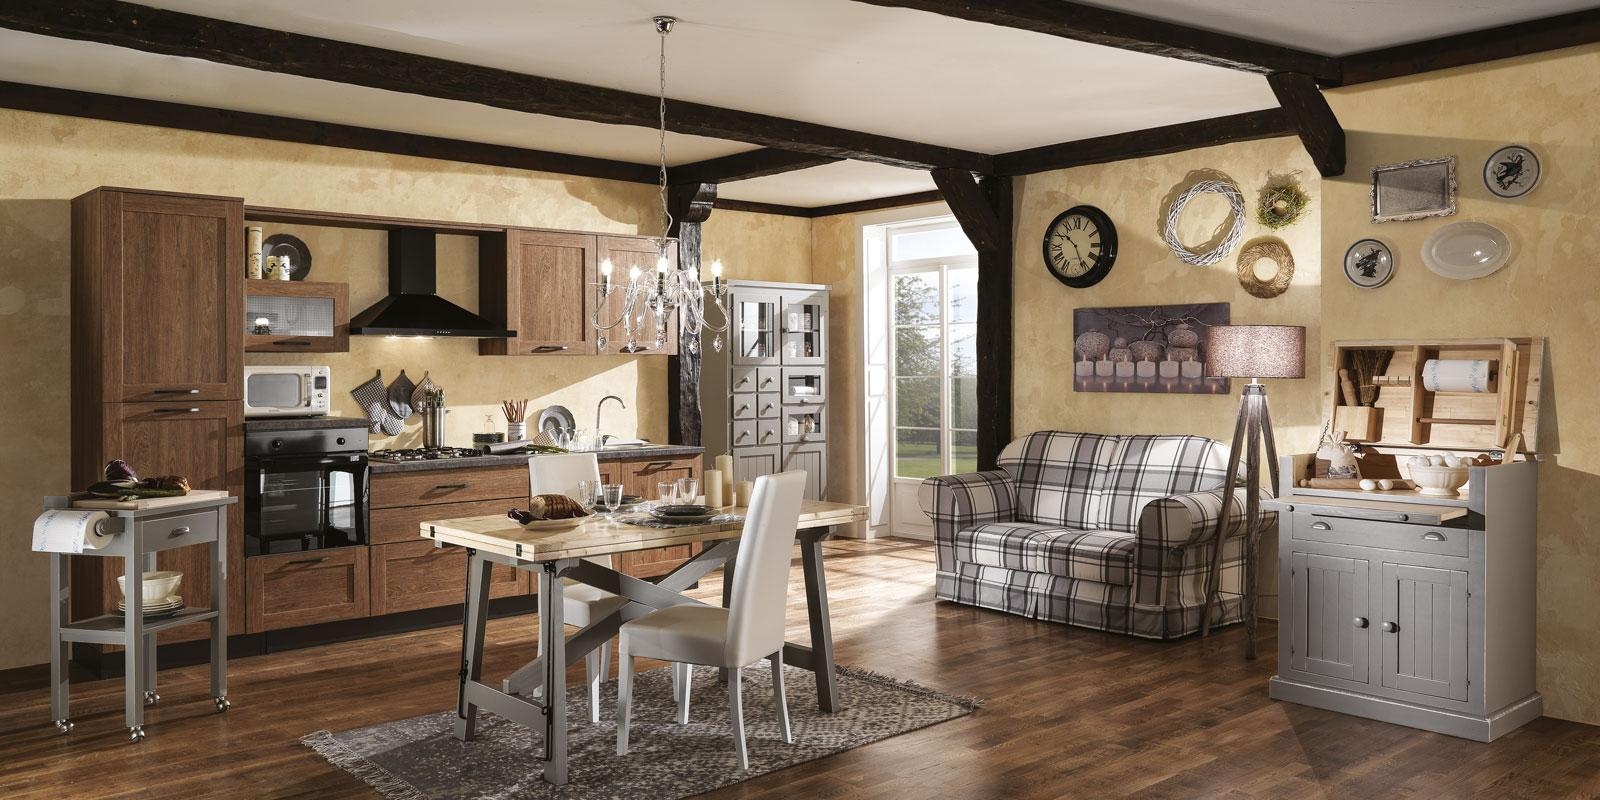 Casa in stile country protagonisti legno e materiali for Arredare casa